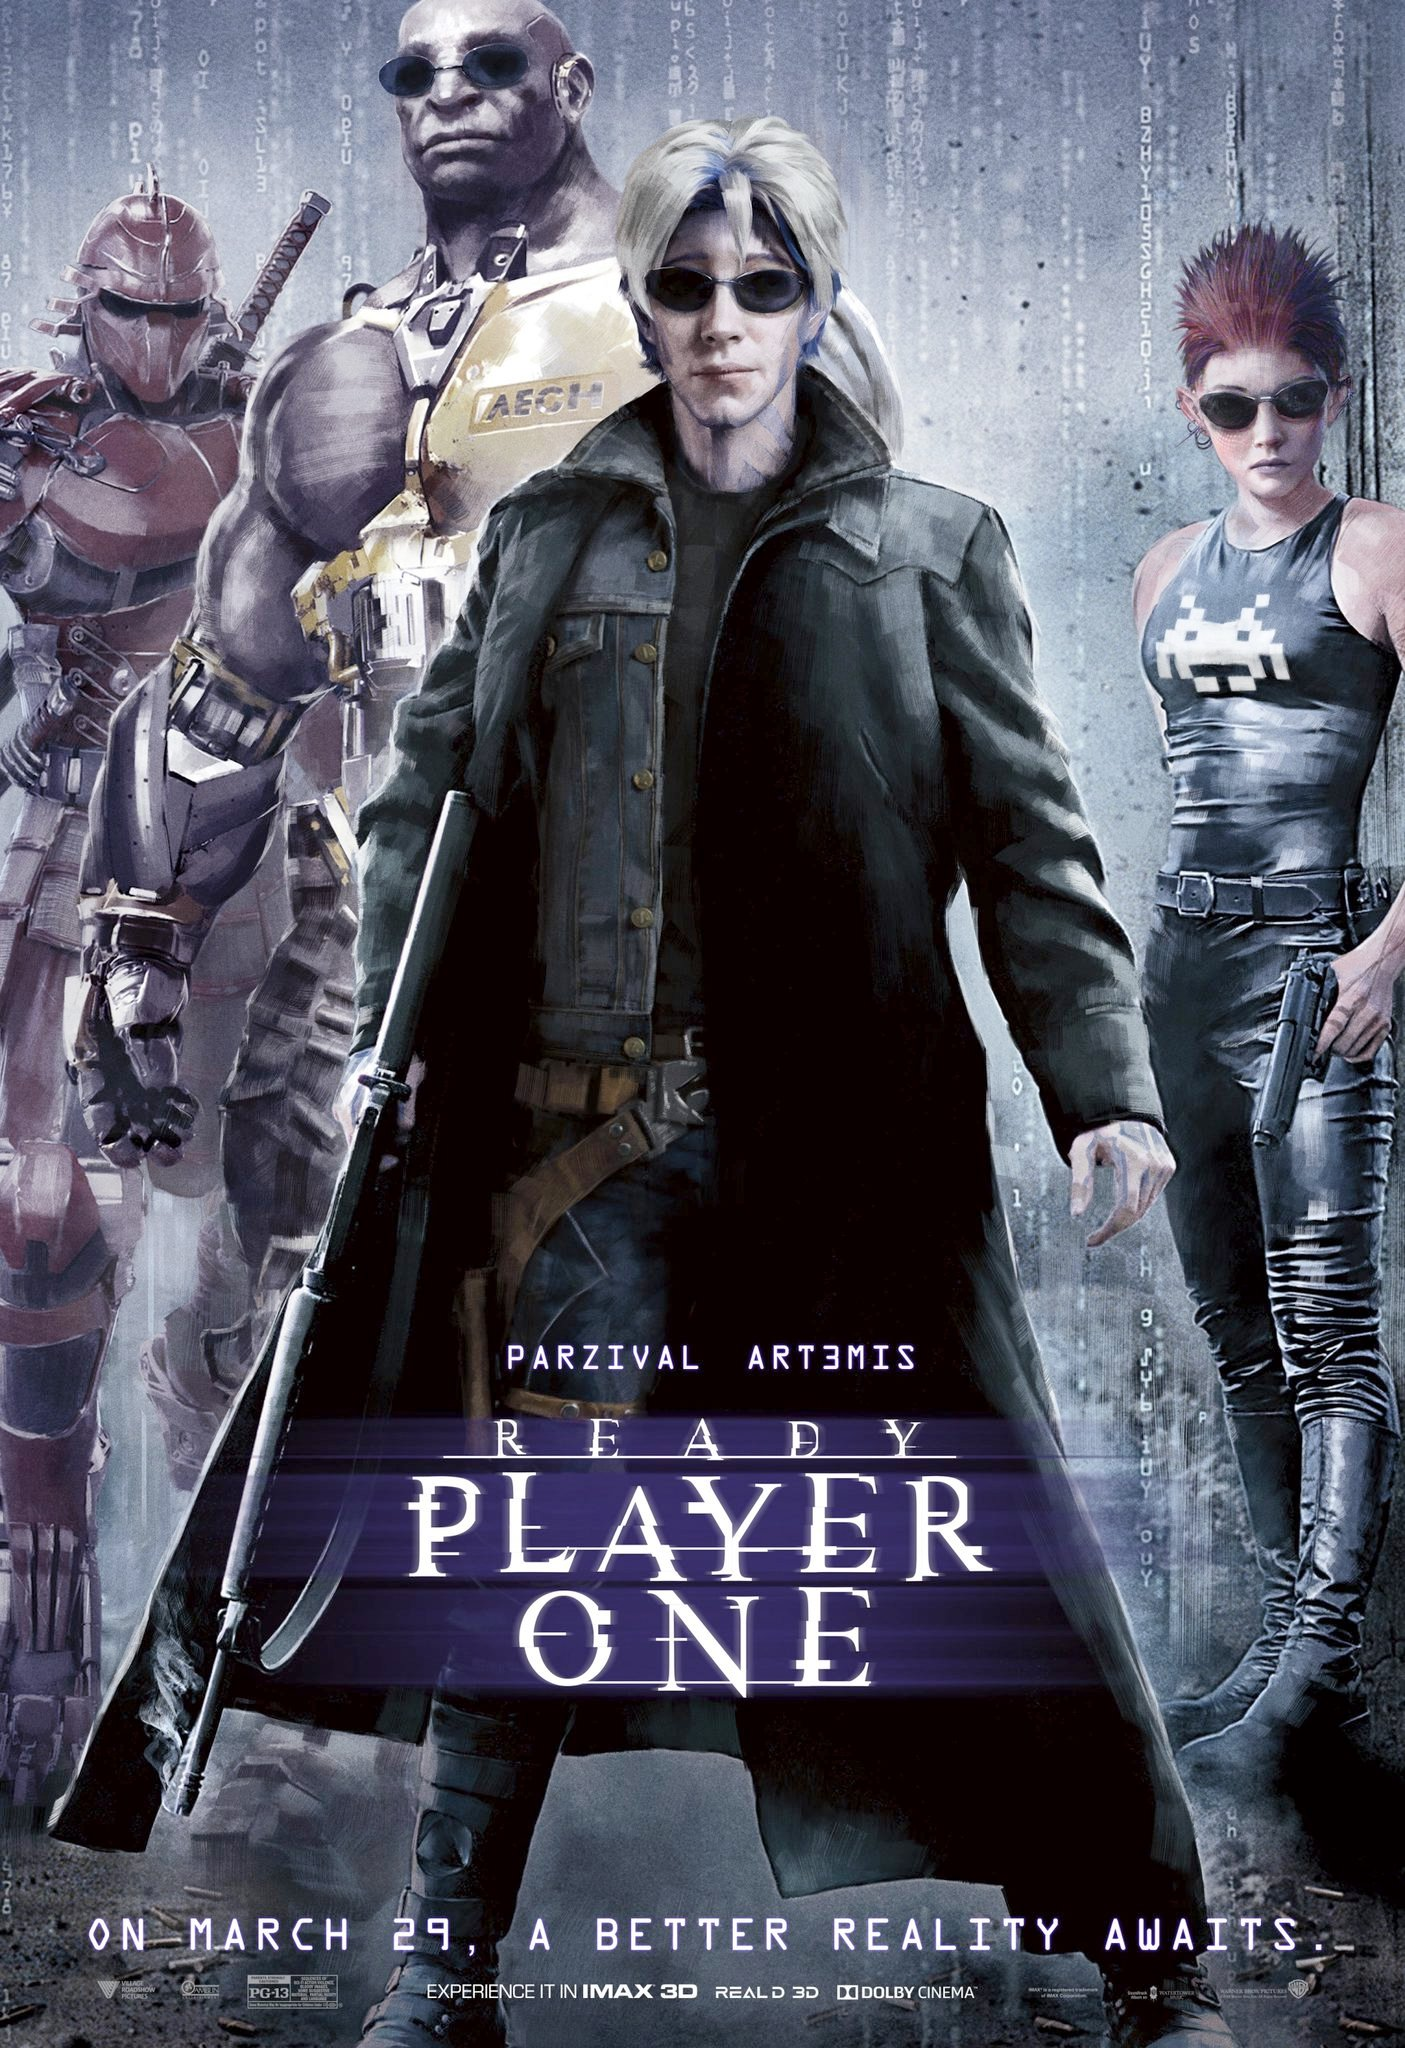 Ready Player One Movie Quotes: READY PLAYER ONE Gets A Series Of Posters That Pay Homage